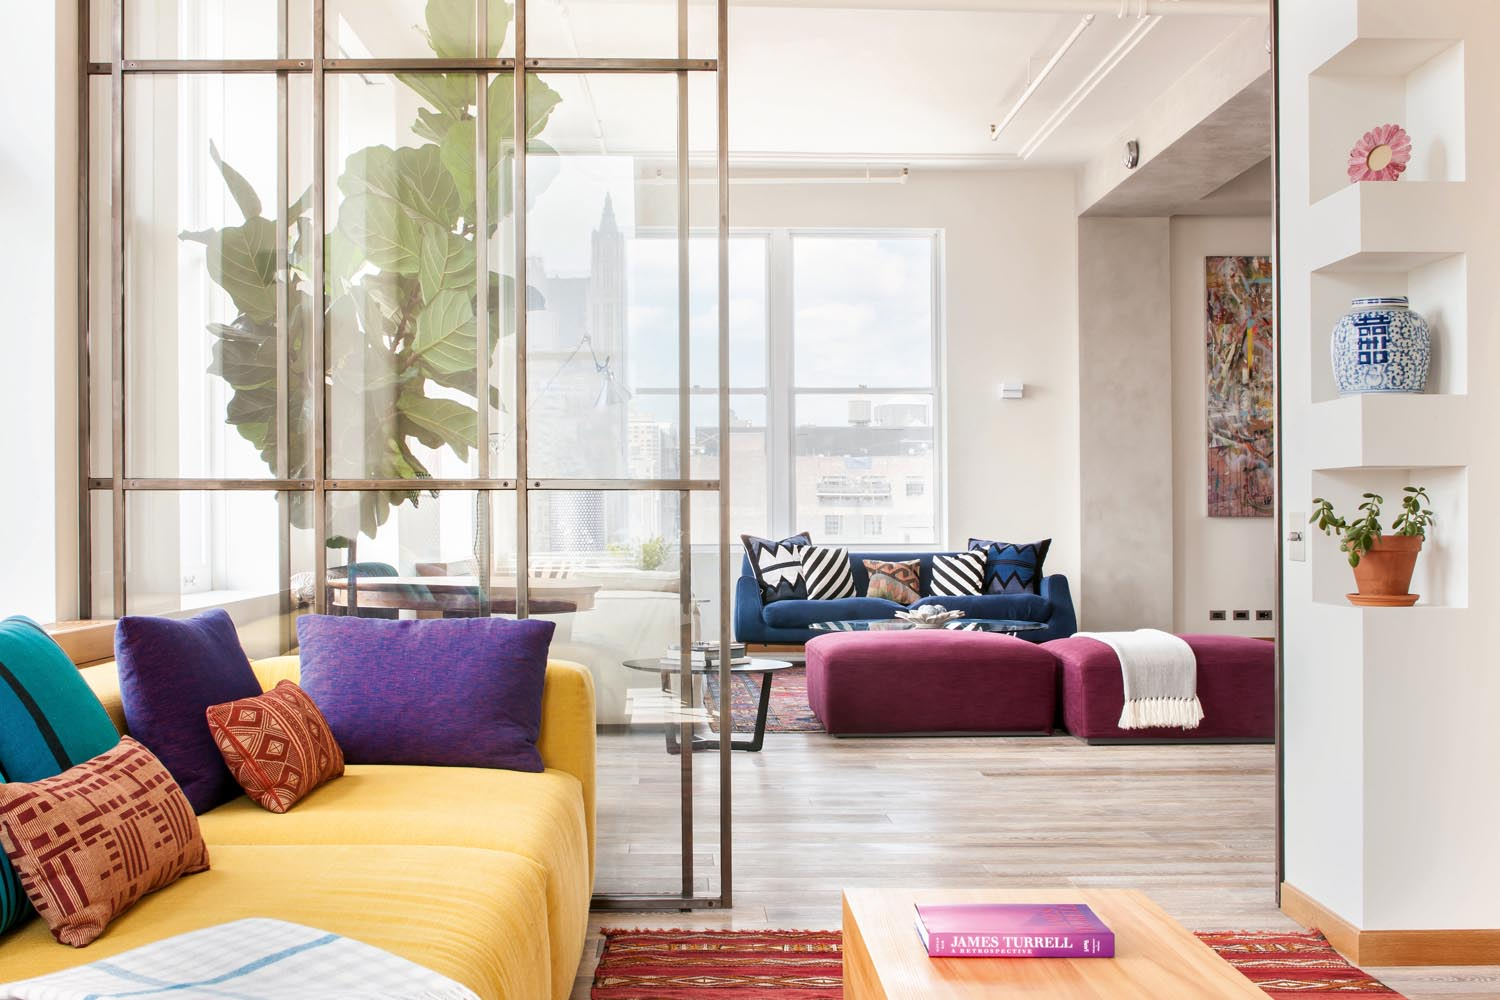 Clashing colours with patterns adds excitement to the room